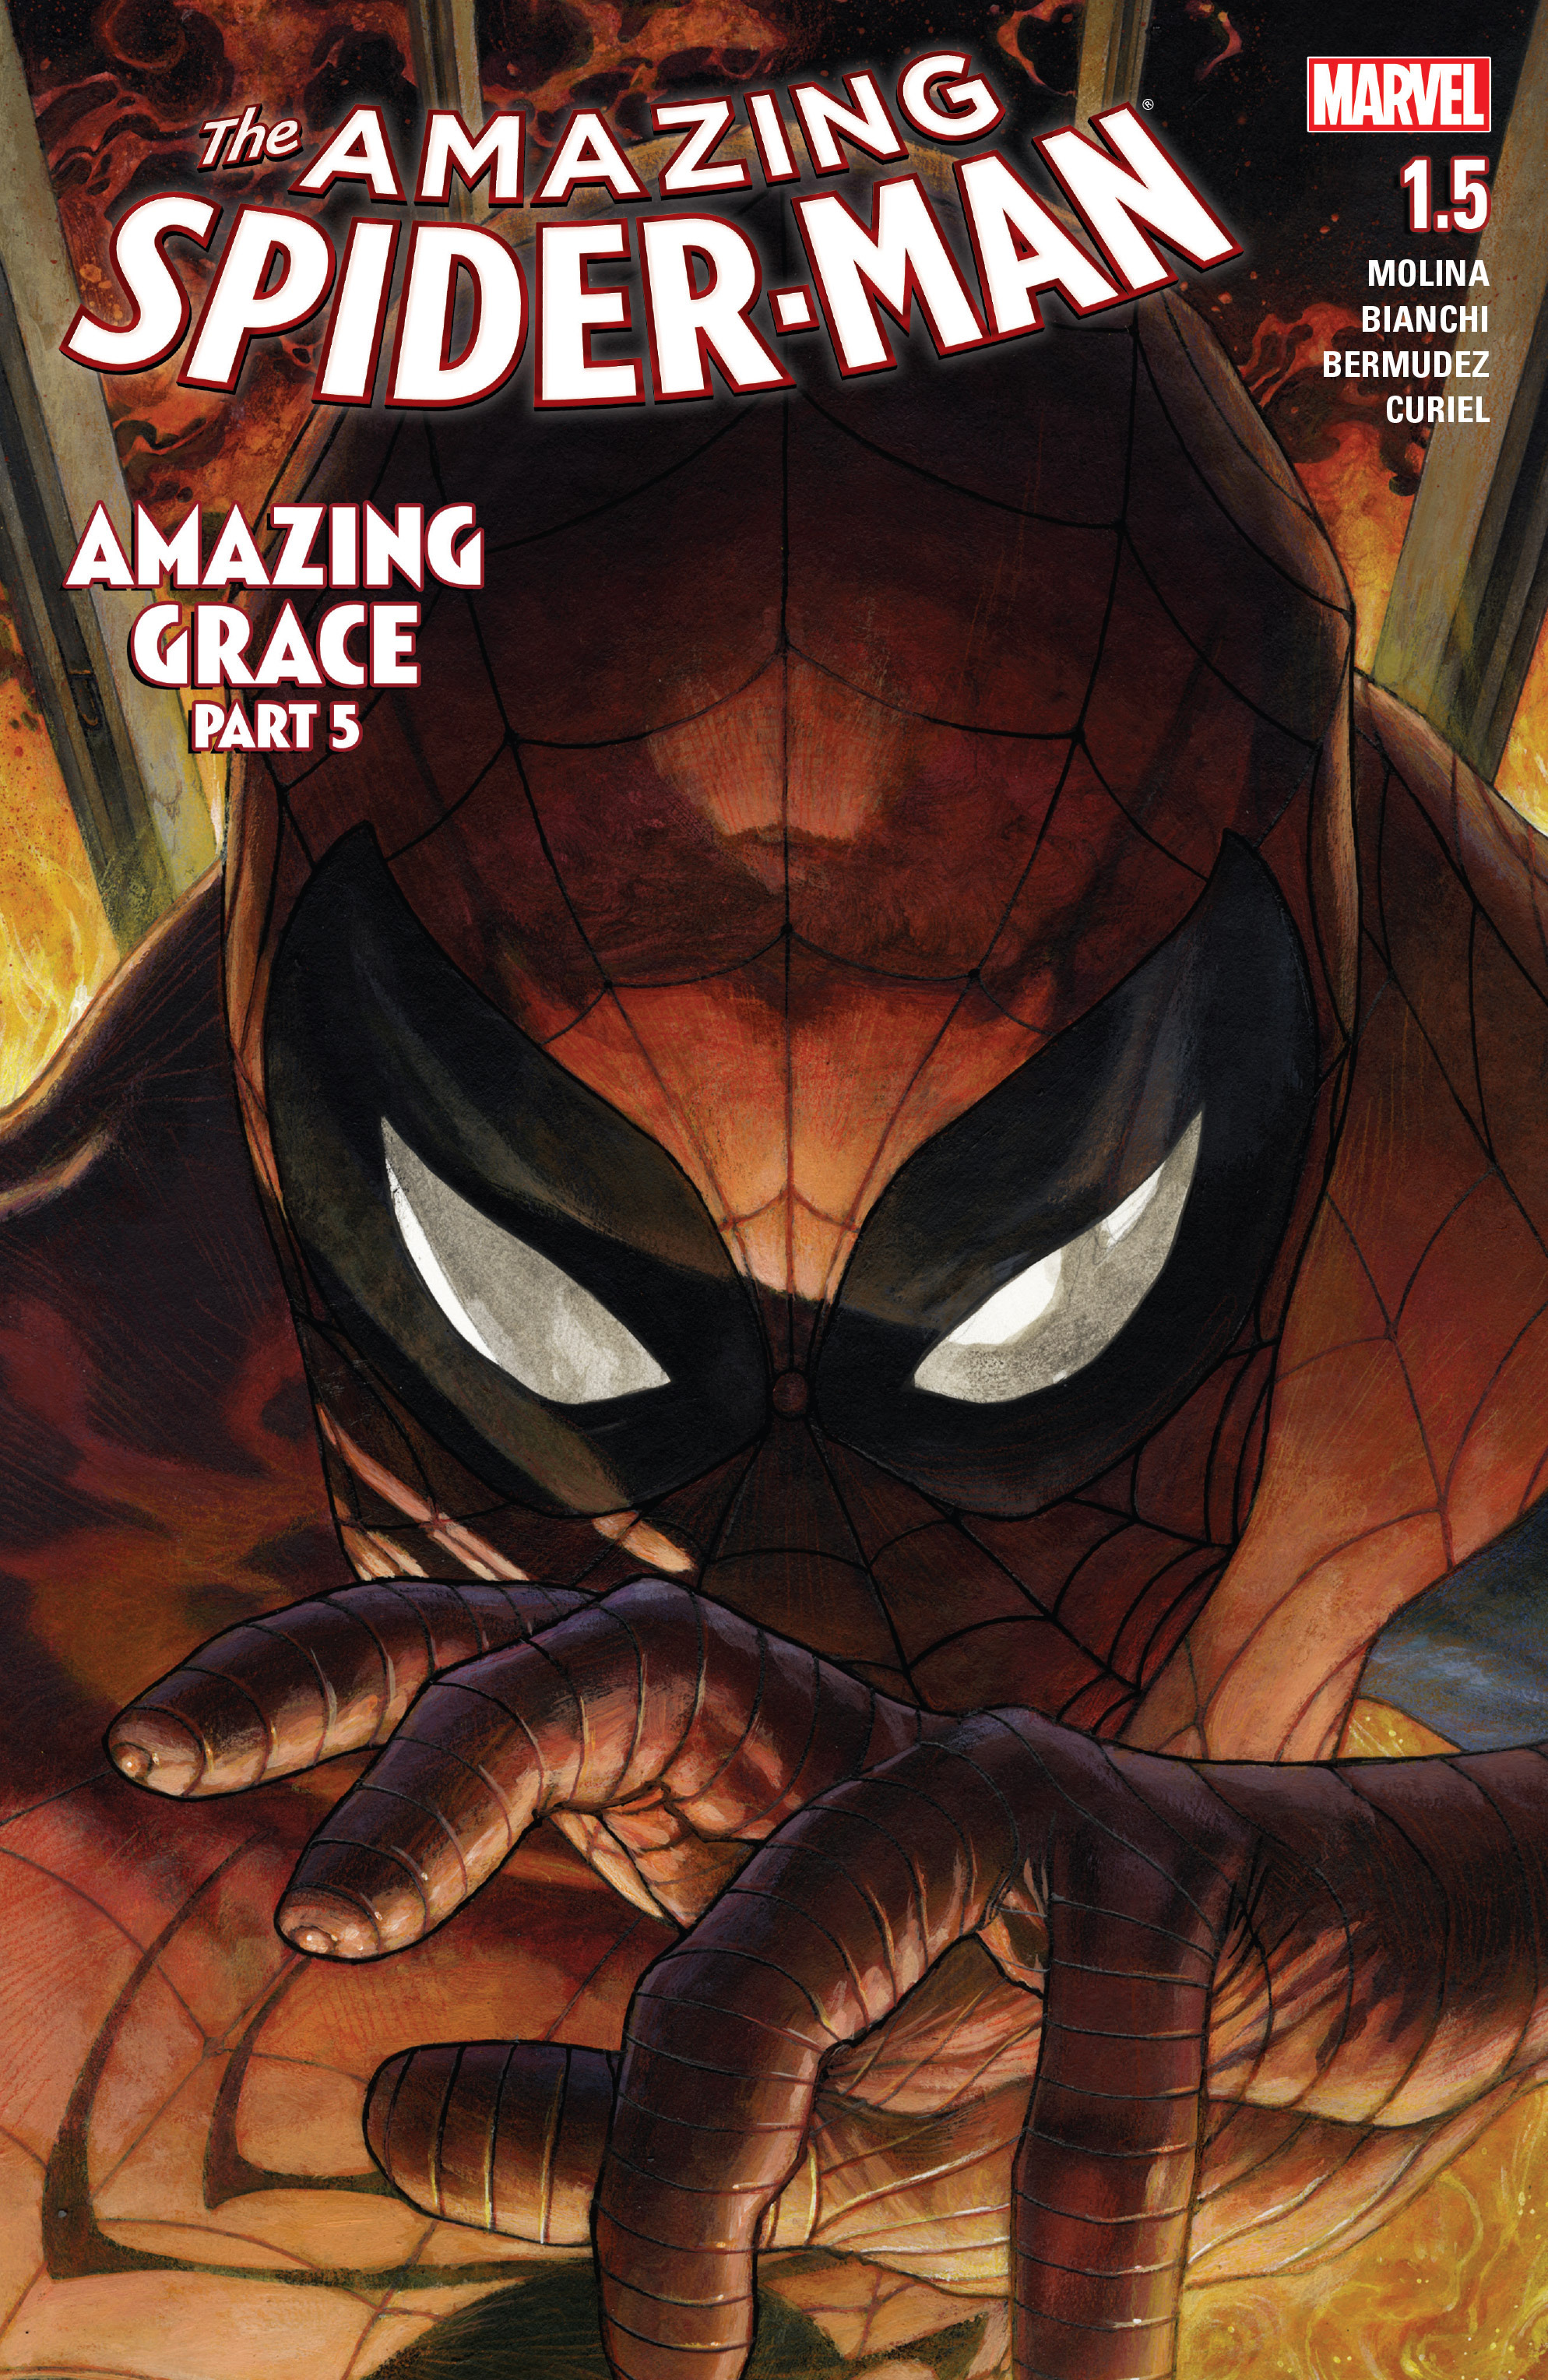 The Amazing Spider-Man (2015) 1.5 Page 1